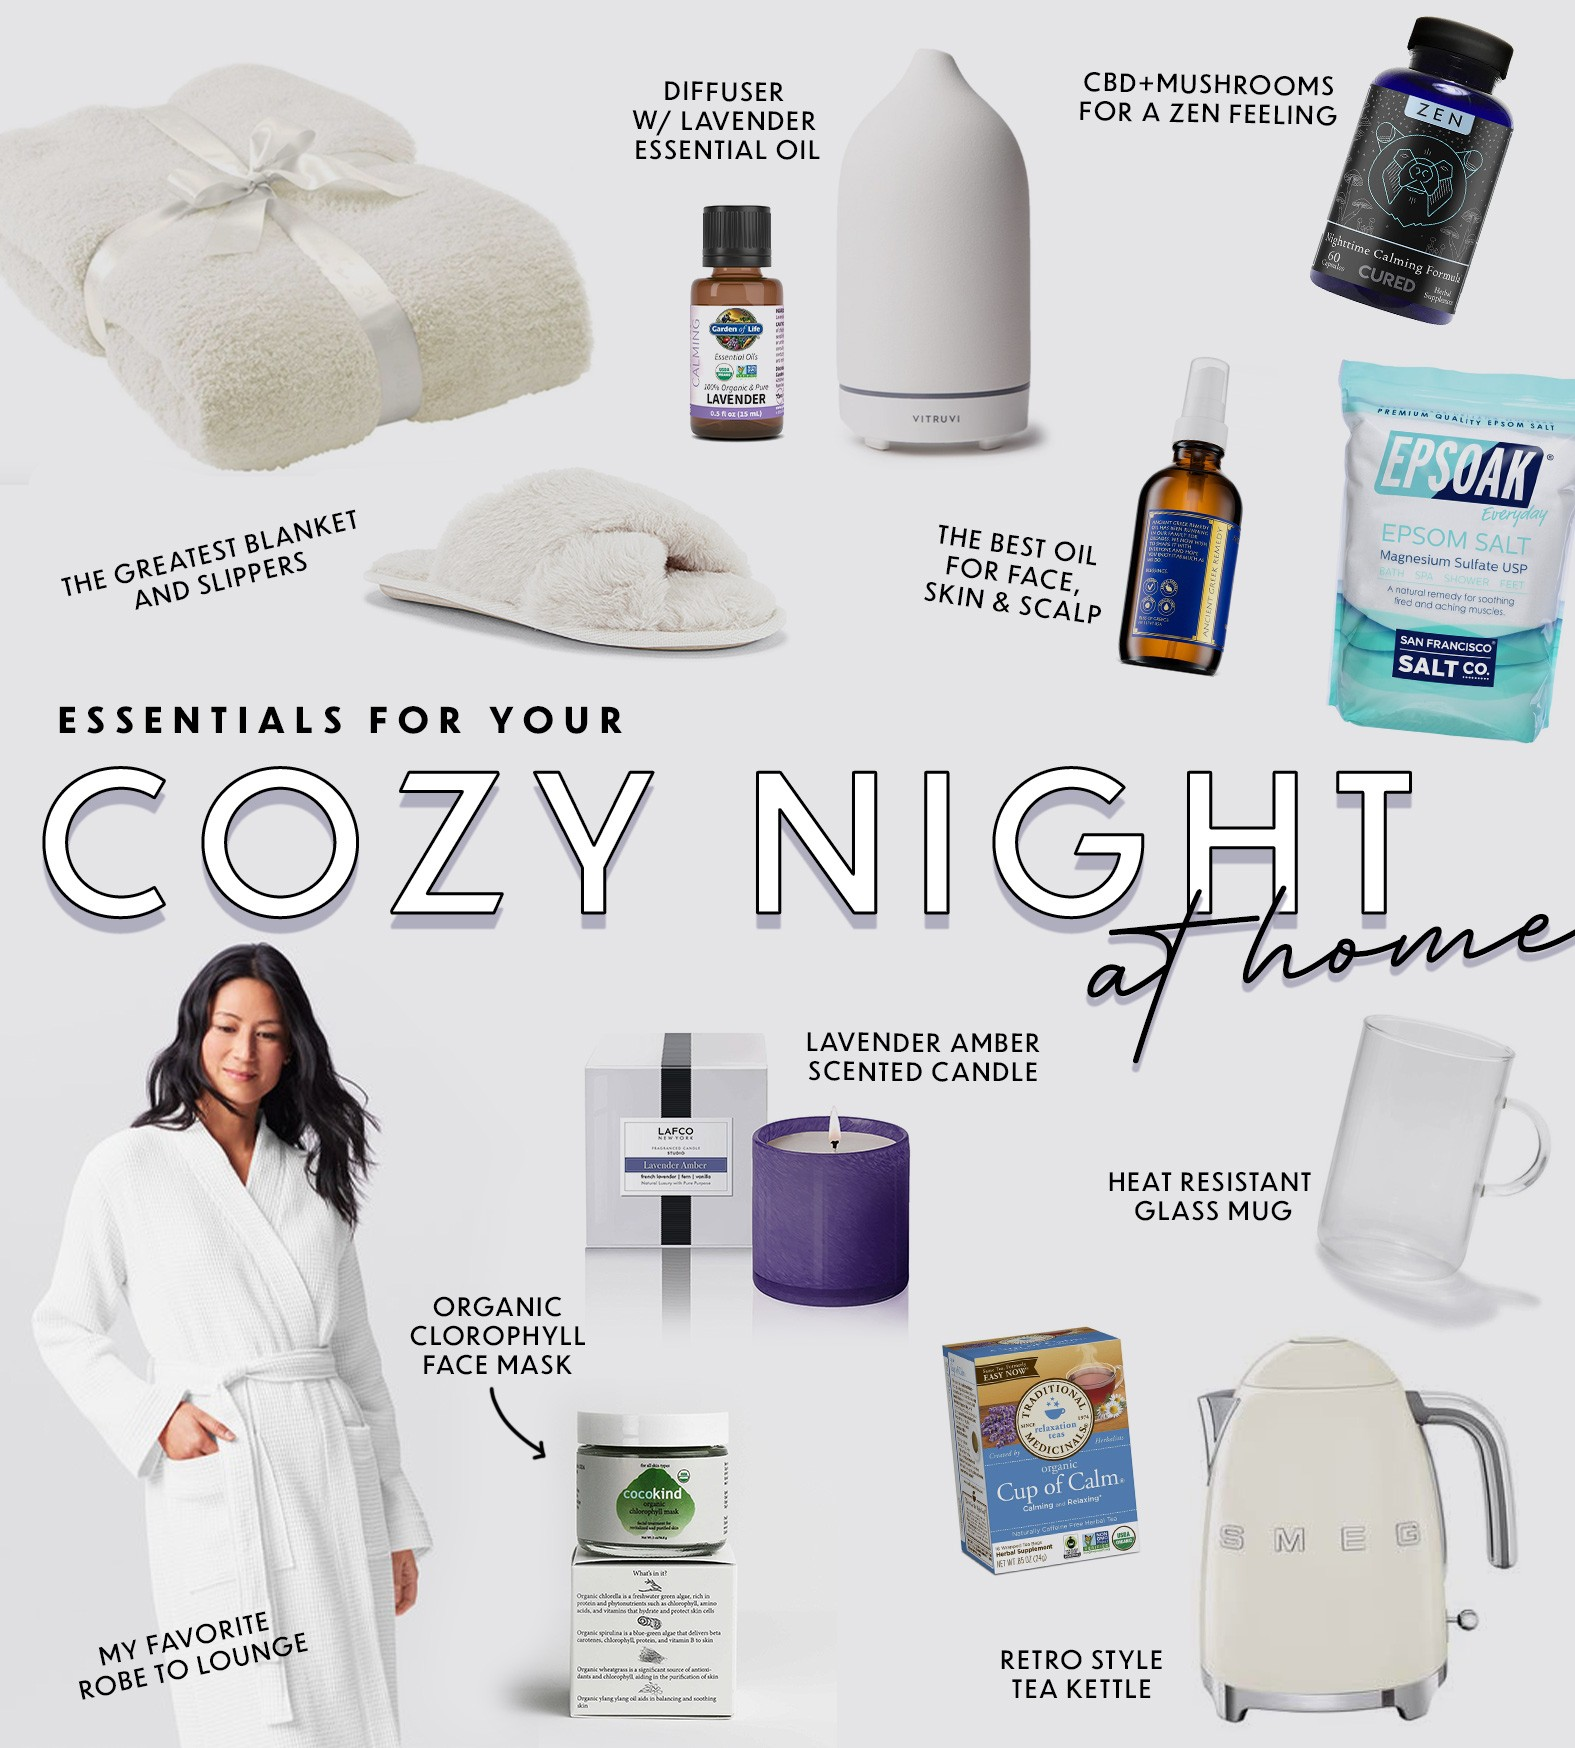 img?v=2 - Everything you need for a 'wellness-ey' cozy night in